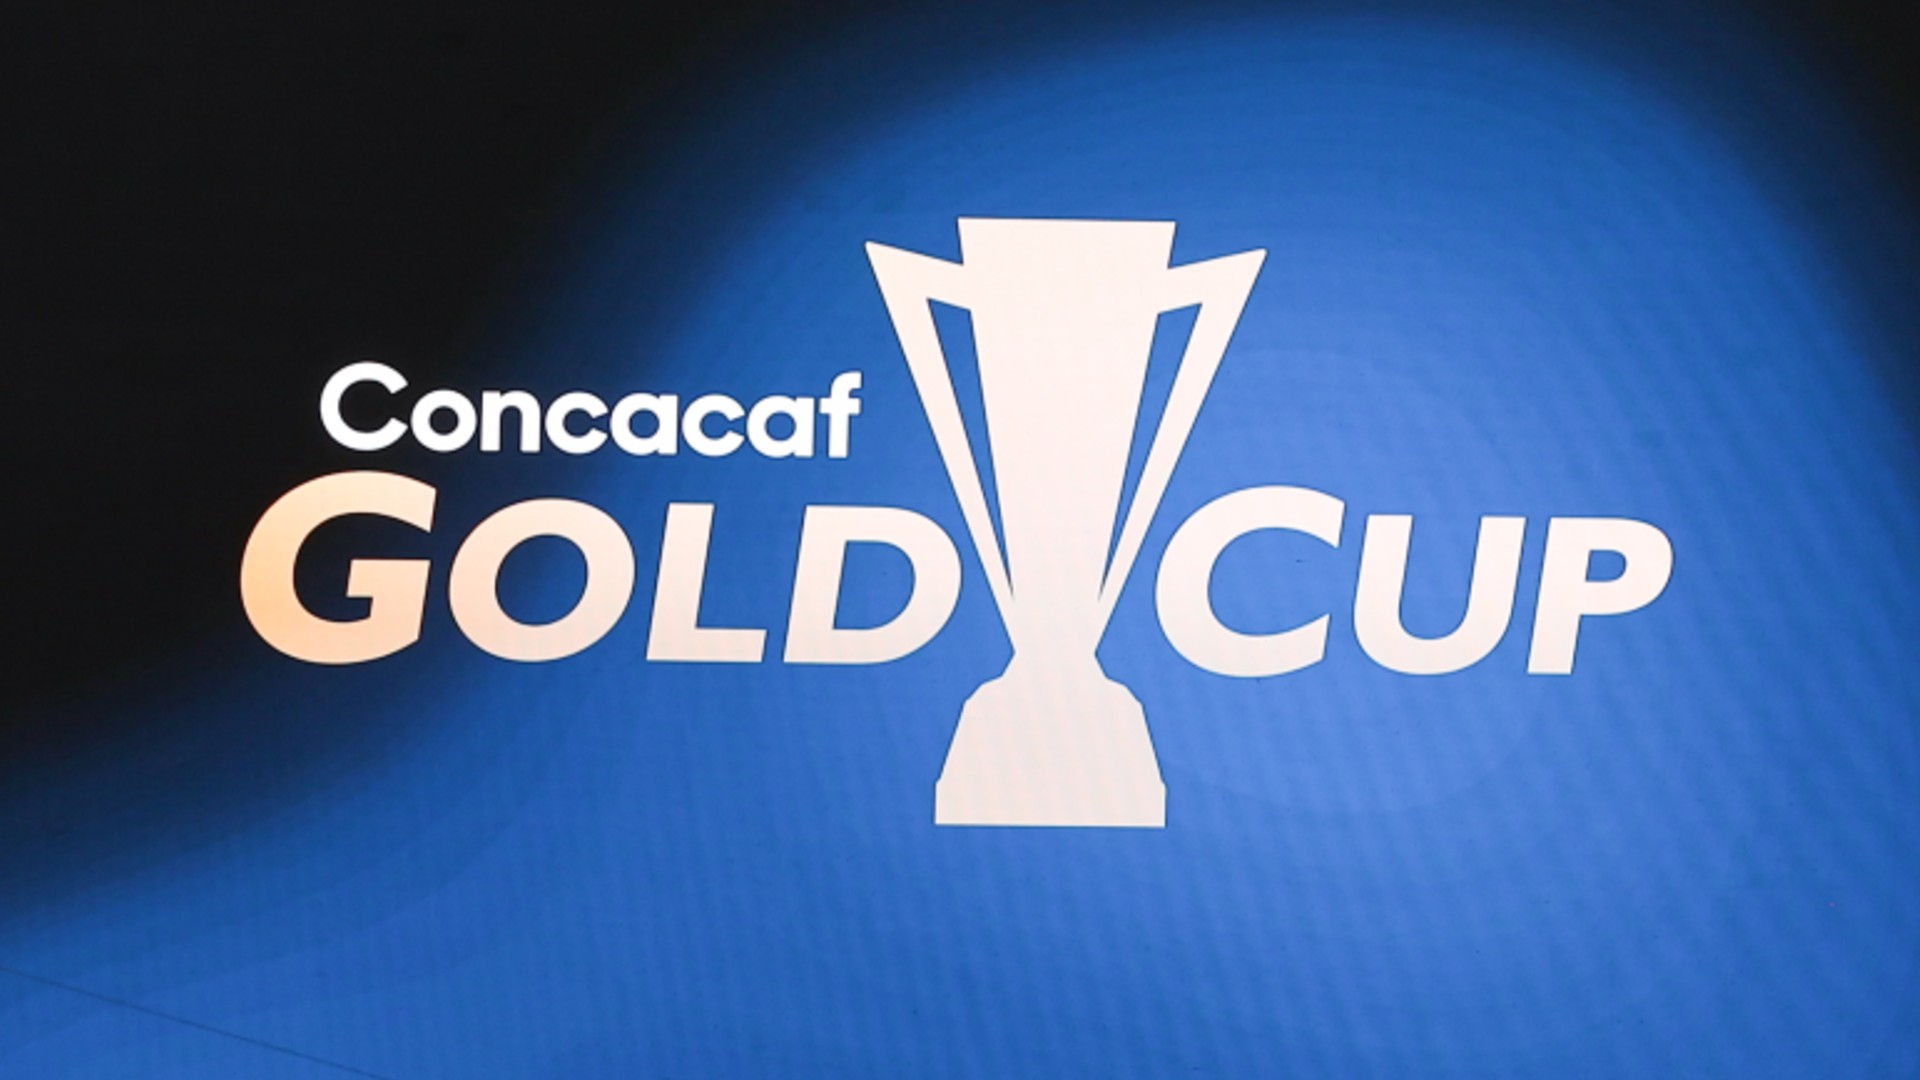 Download concacaf gold cup vector logo in the svg file format. CONCACAF Gold Cup schedule 2021: Complete dates, times, TV